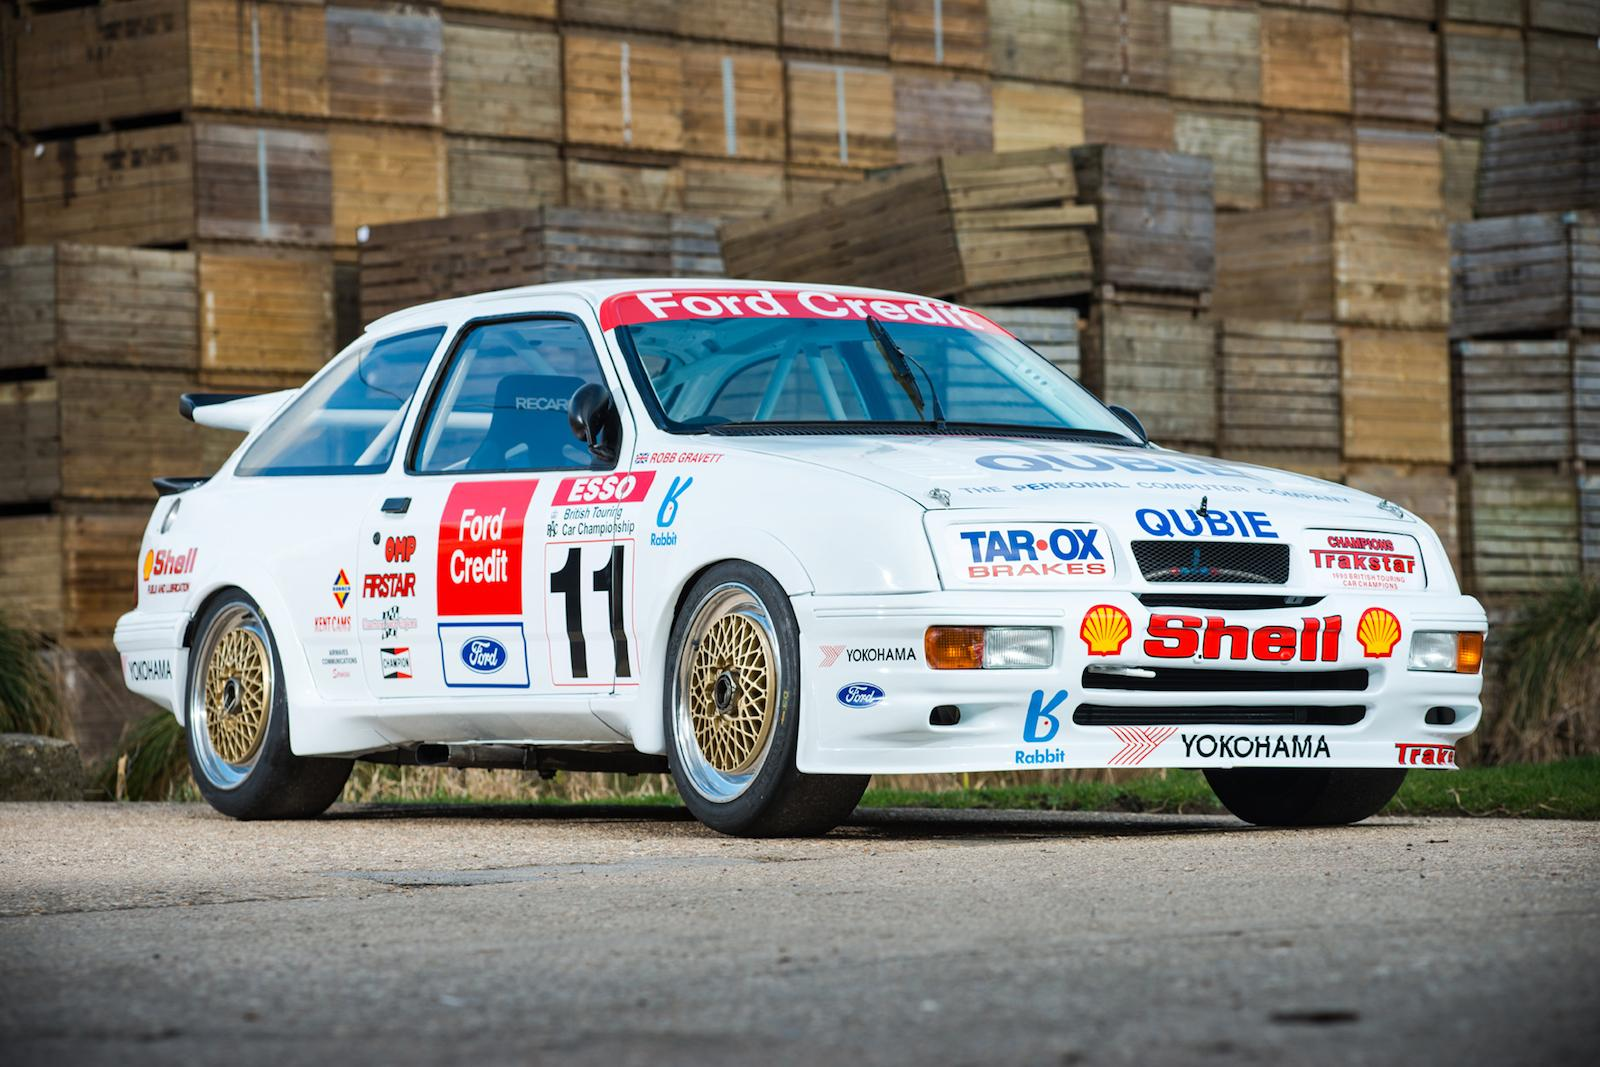 Last Group A BTCC-title winning Ford Sierra Cosworth RS500 for sale